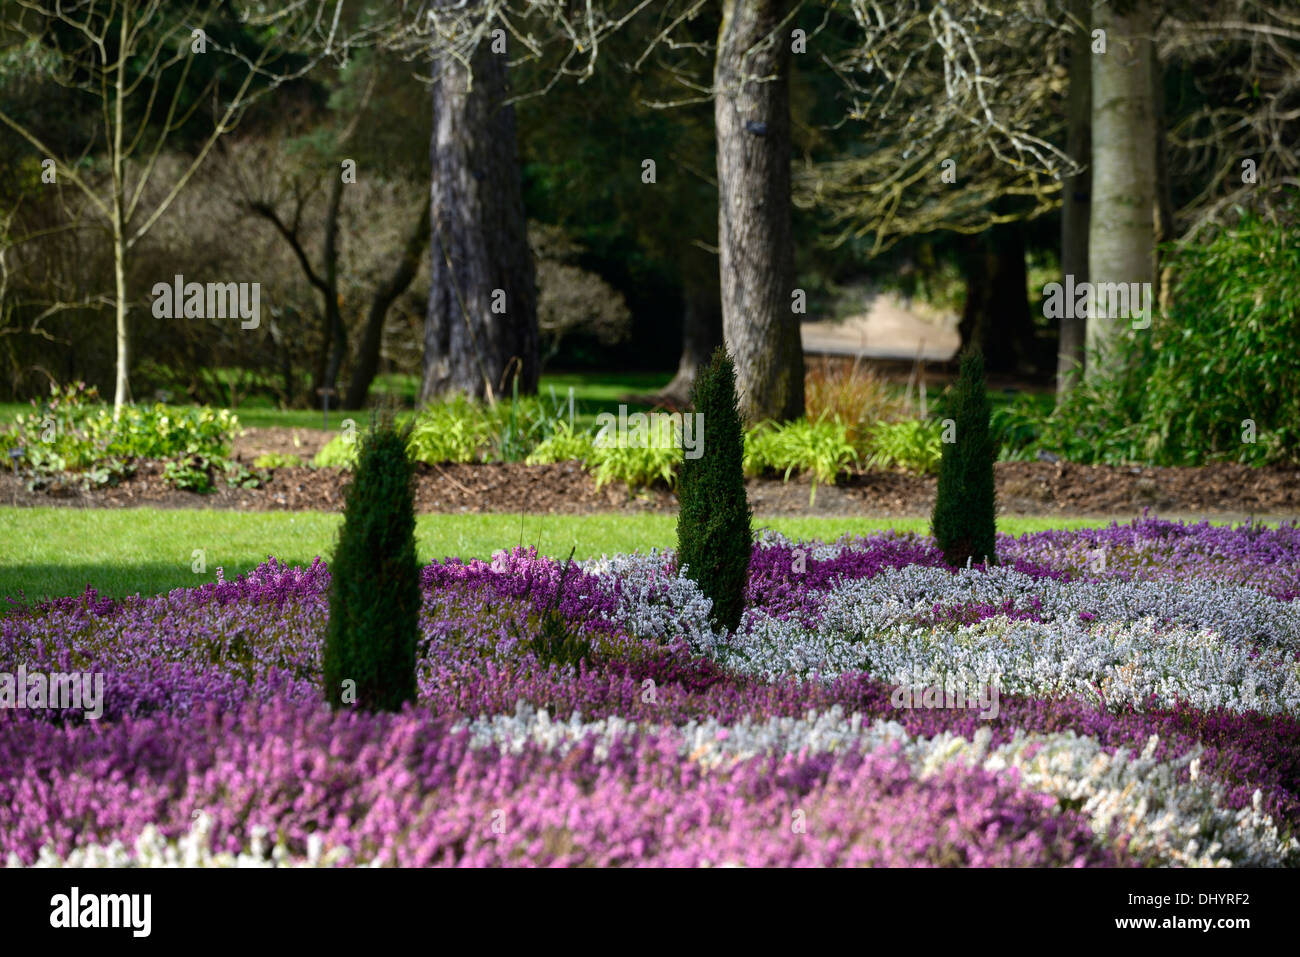 erica carnea heidekraut wei e blume garten pflanze winter fr hling niedrig wachsende immergr ner. Black Bedroom Furniture Sets. Home Design Ideas